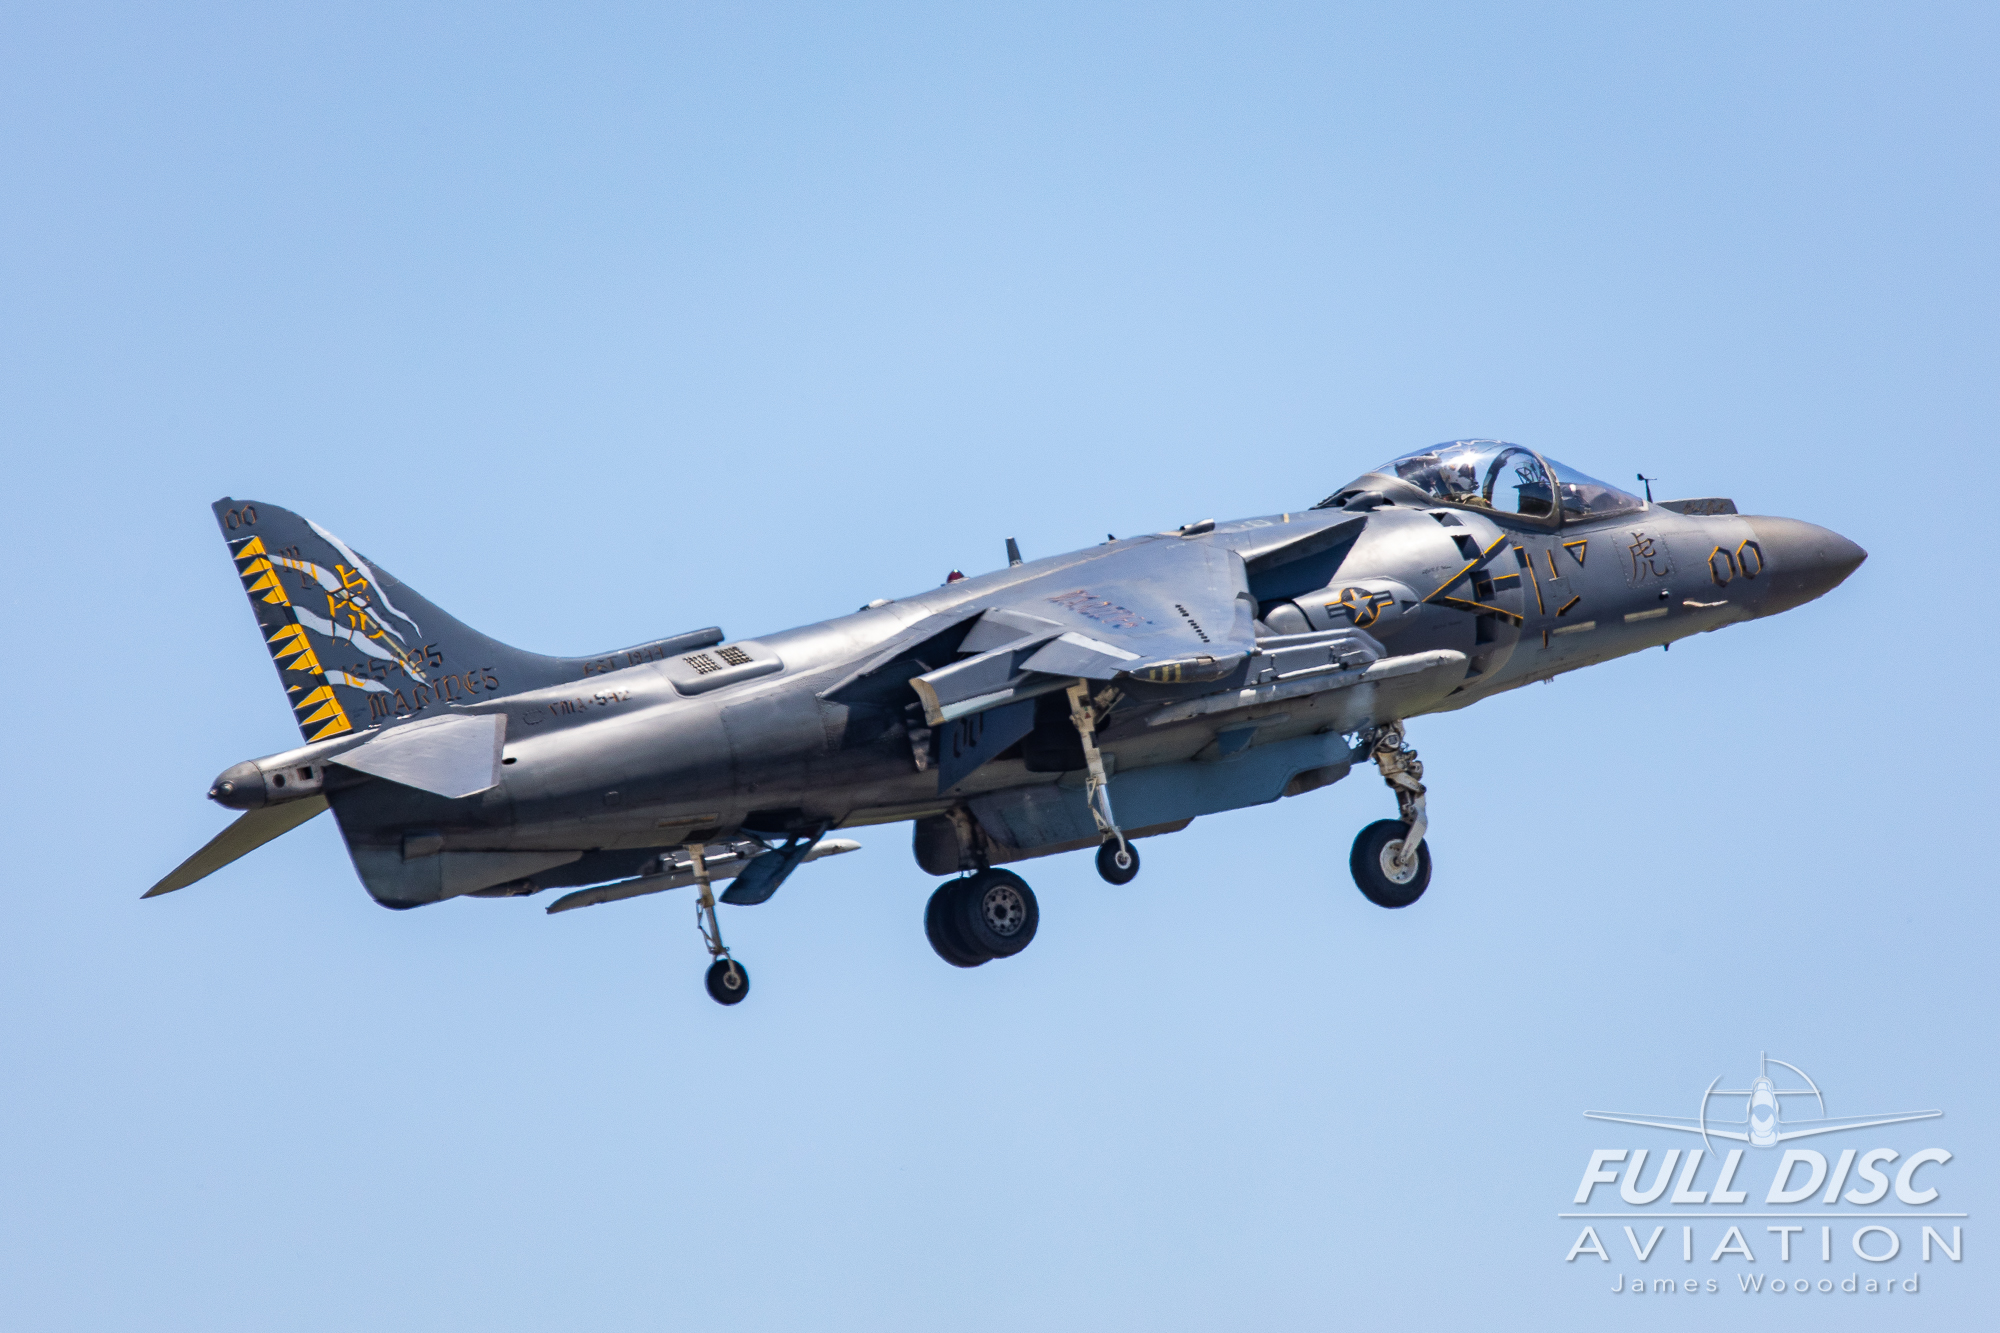 FullDiscAviation_JamesWoodard-April 27, 2019-101.jpg